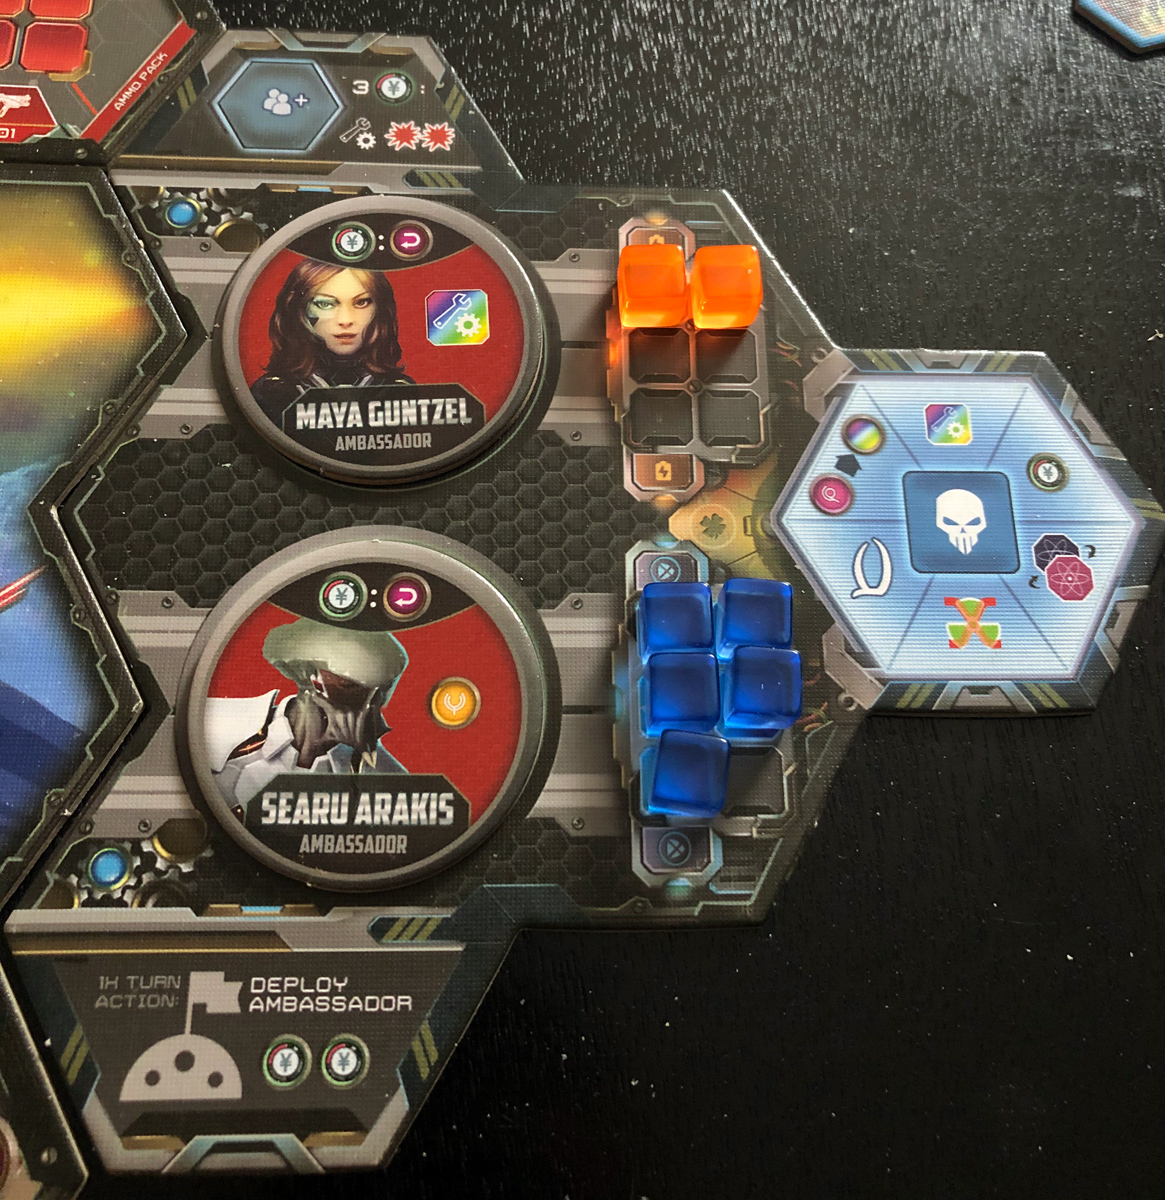 Overhead close-up photo of the mech combat panel showing placement of ambassadors and cubes.